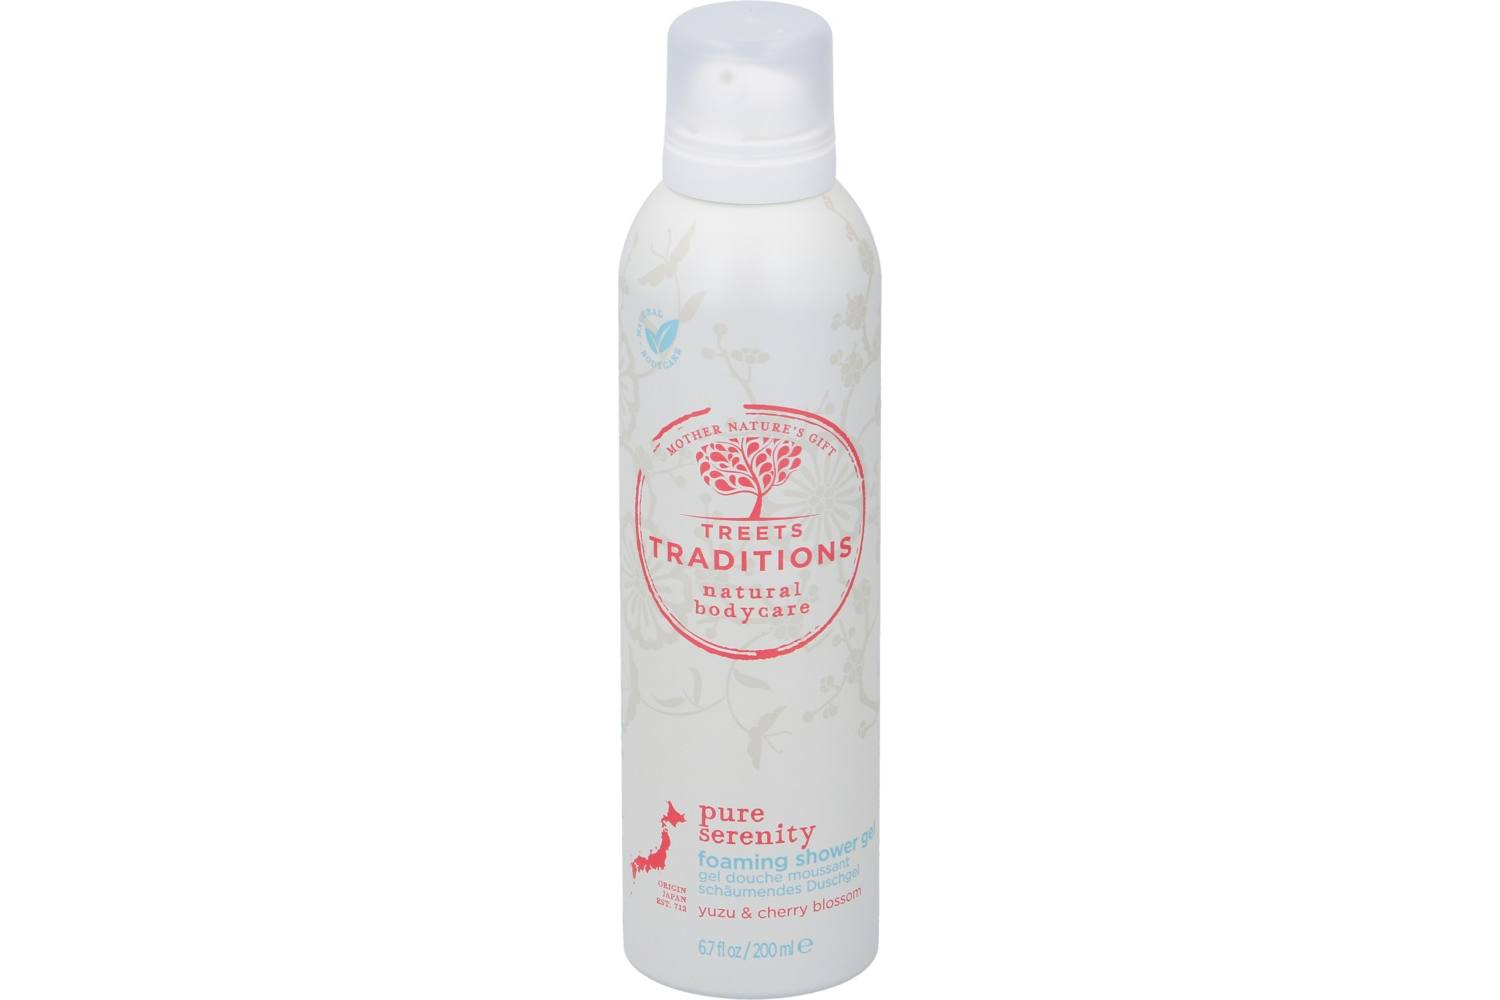 Body care, Treets, foaming shower gel, pure serenity, 200ml, 1 1